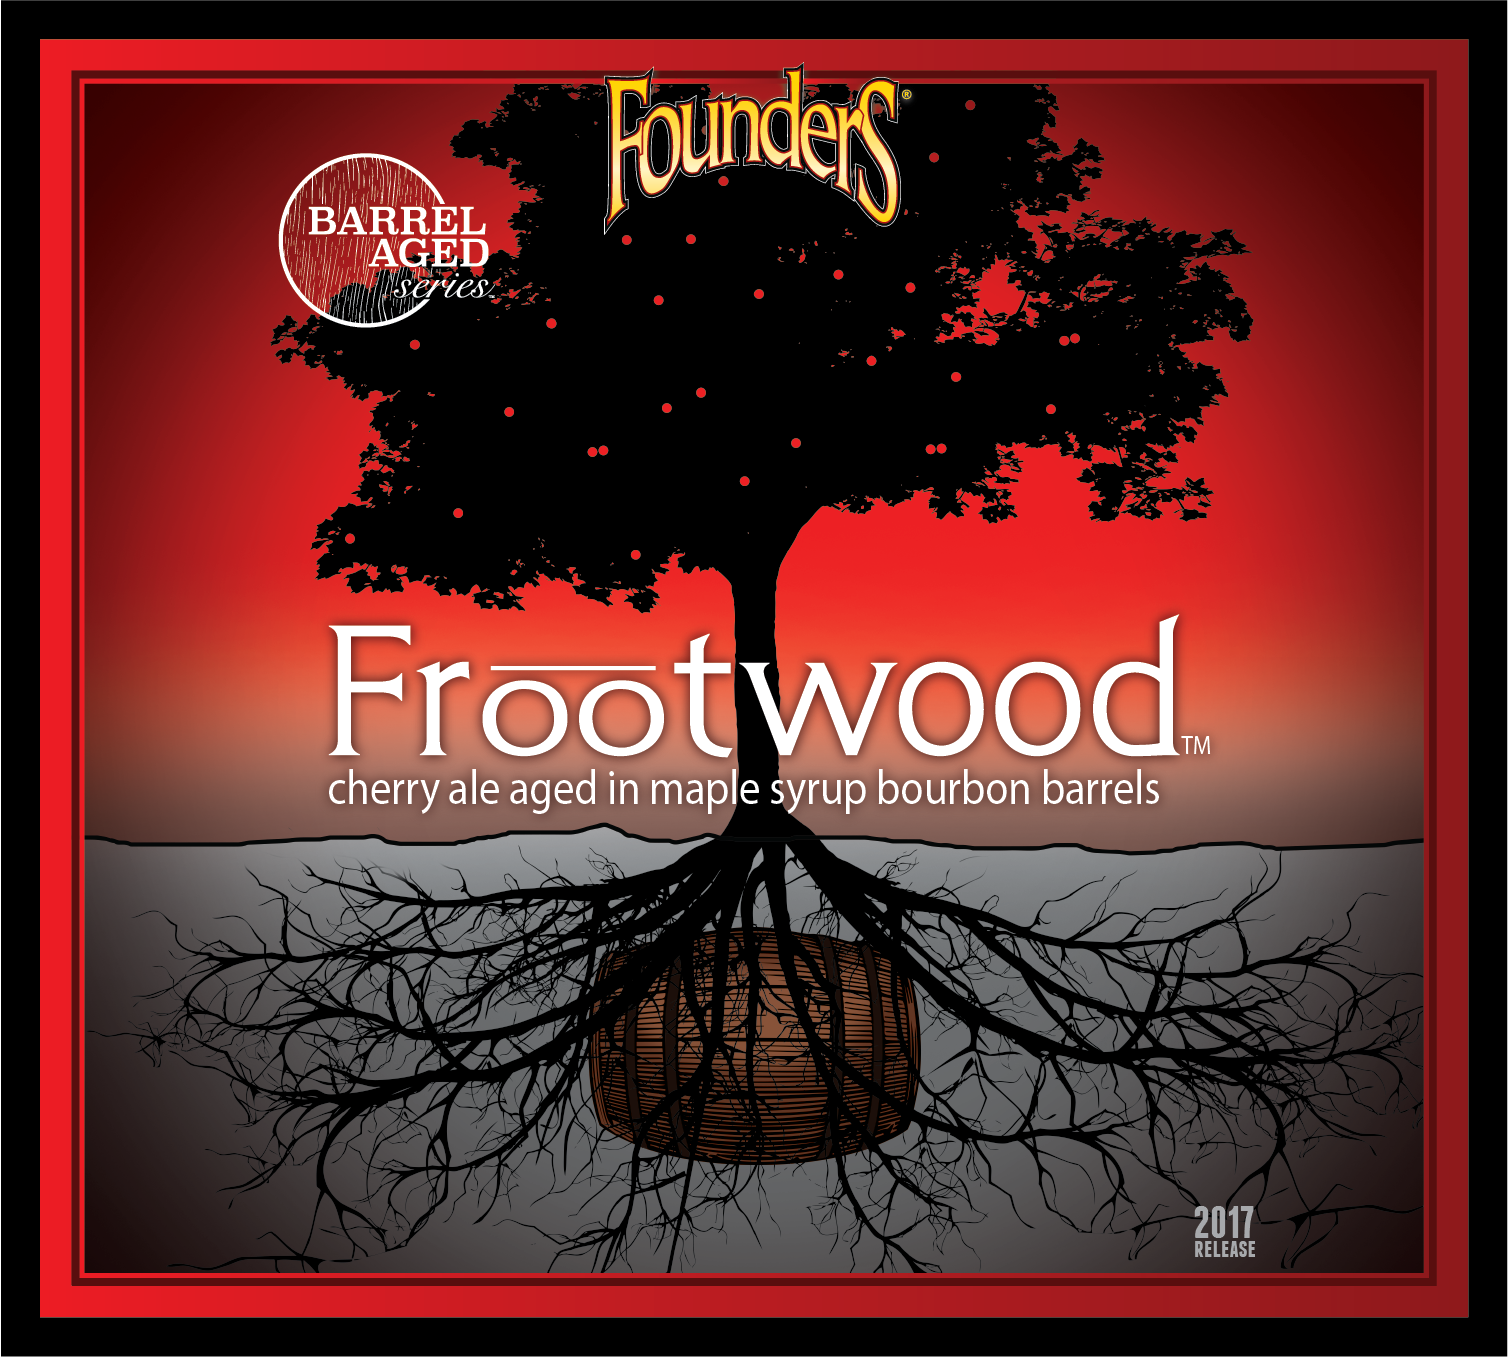 FrootwoodFounders